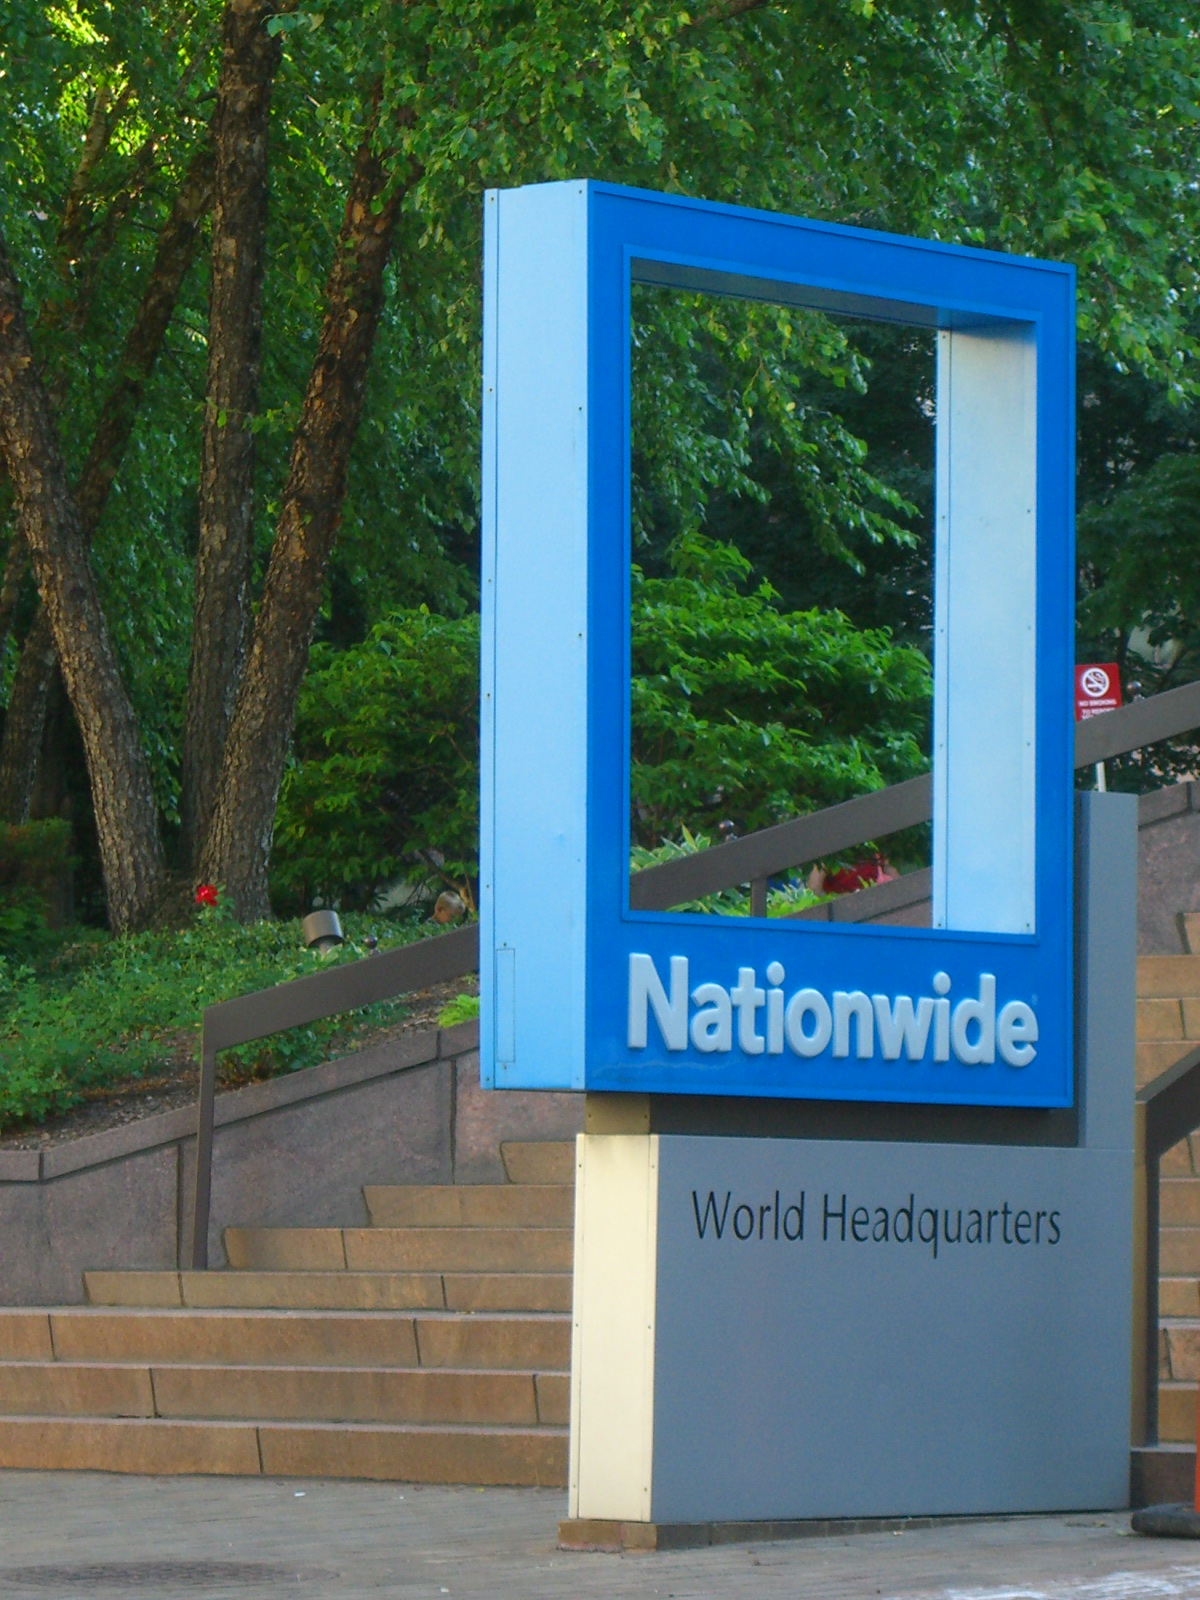 What are some facts about Nationwide auto insurance?